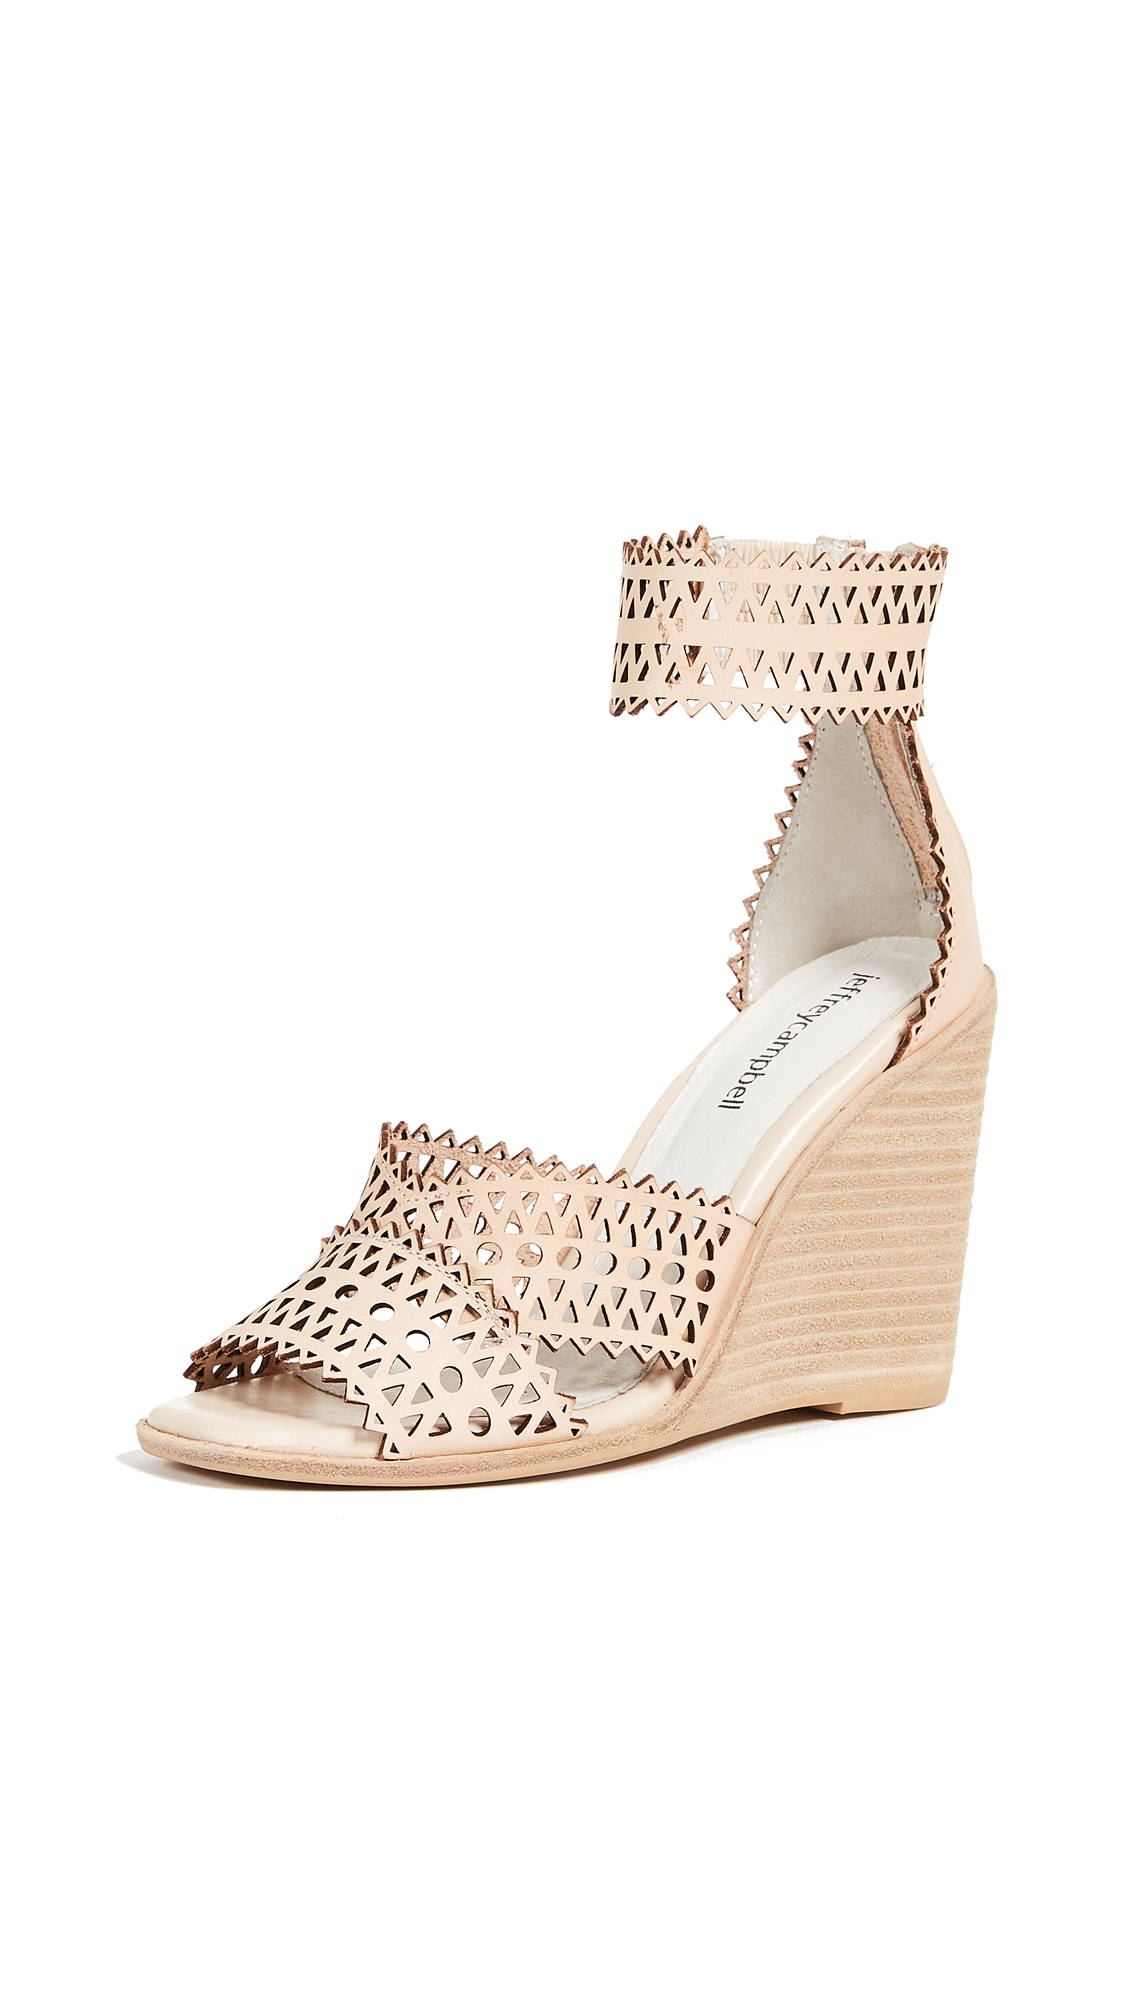 Jeffrey Campbell Besante Woven Wedges - Natural